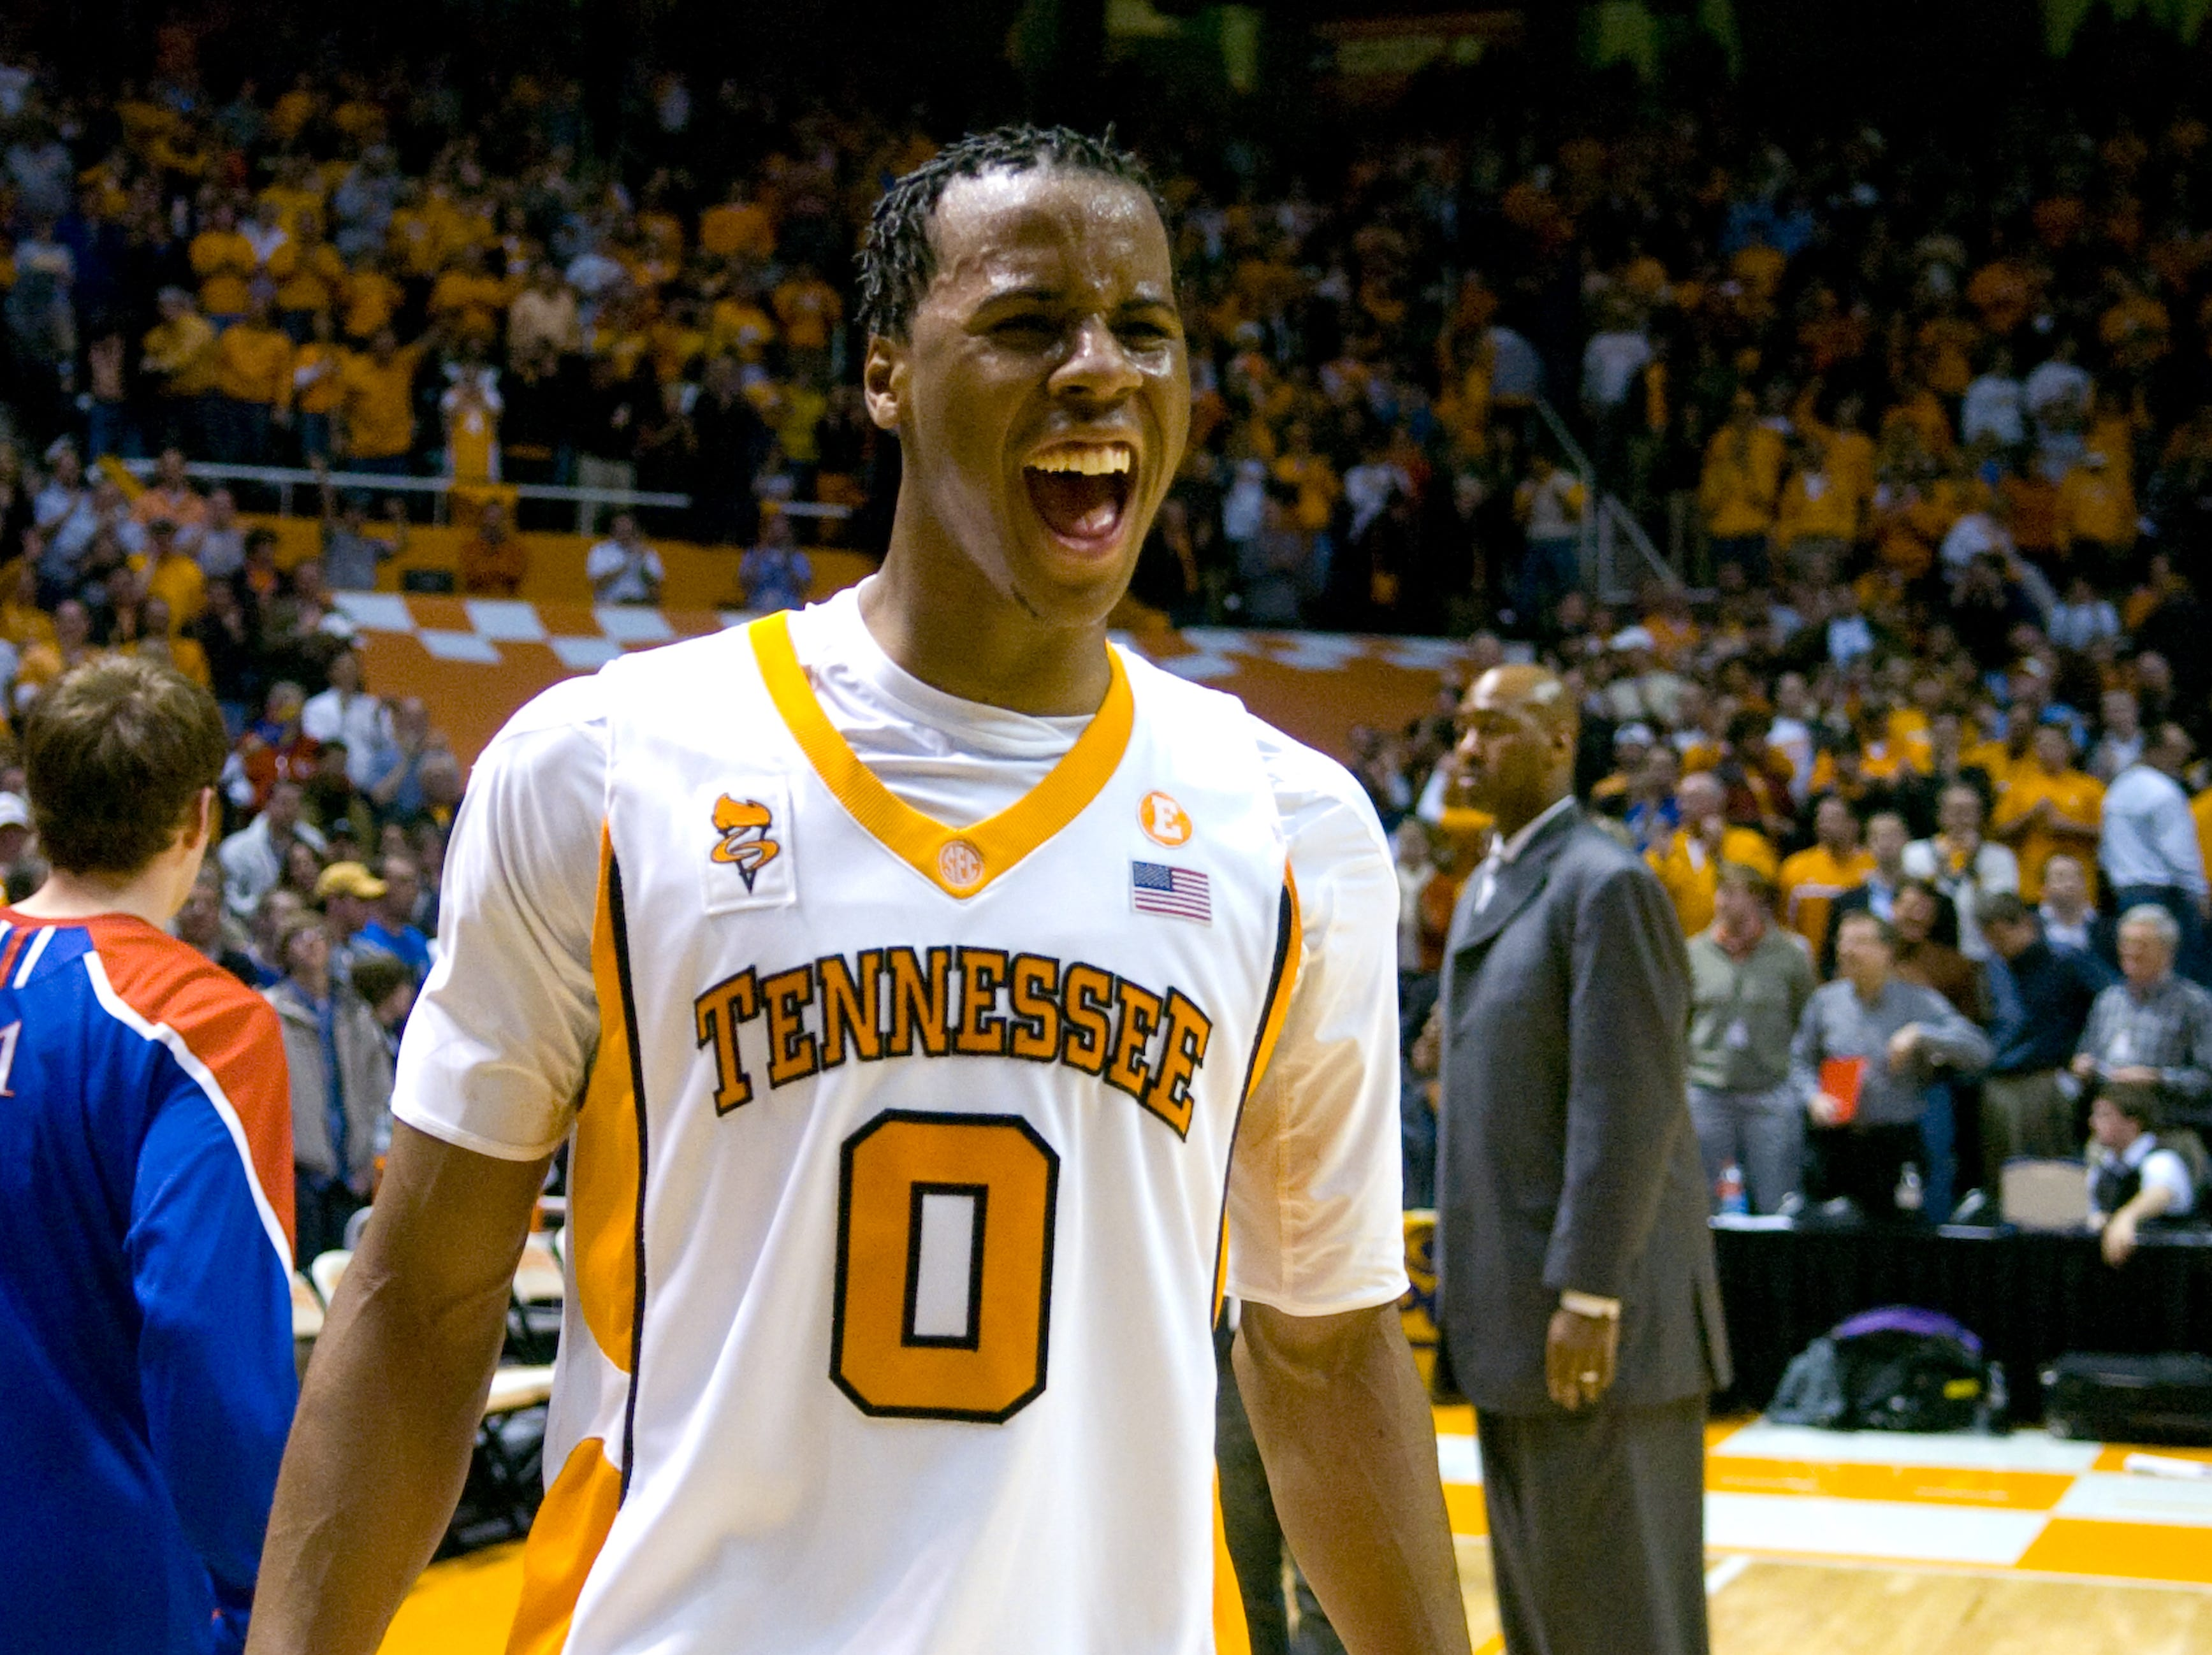 Renaldo Woolridge yells out in celebration after defeating Kansas. Woolridge scored 14 points and grabbed 8 rebounds. Tennessee upsets number one ranked  Kansas 76-68 at Thompson-Boling Arena  Sunday, Jan 10, 2010.